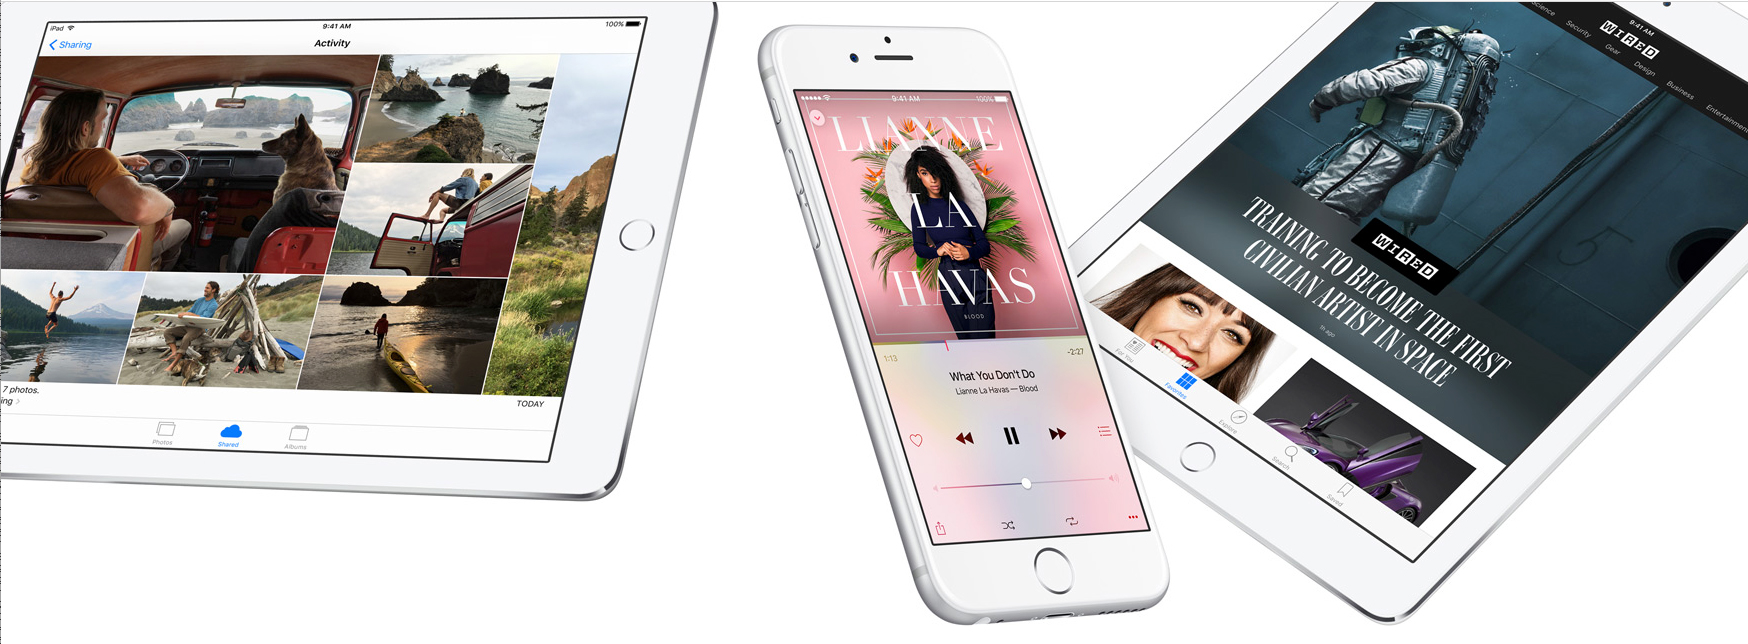 Apple seeds the first beta version of iOS 9.2 to registered developers